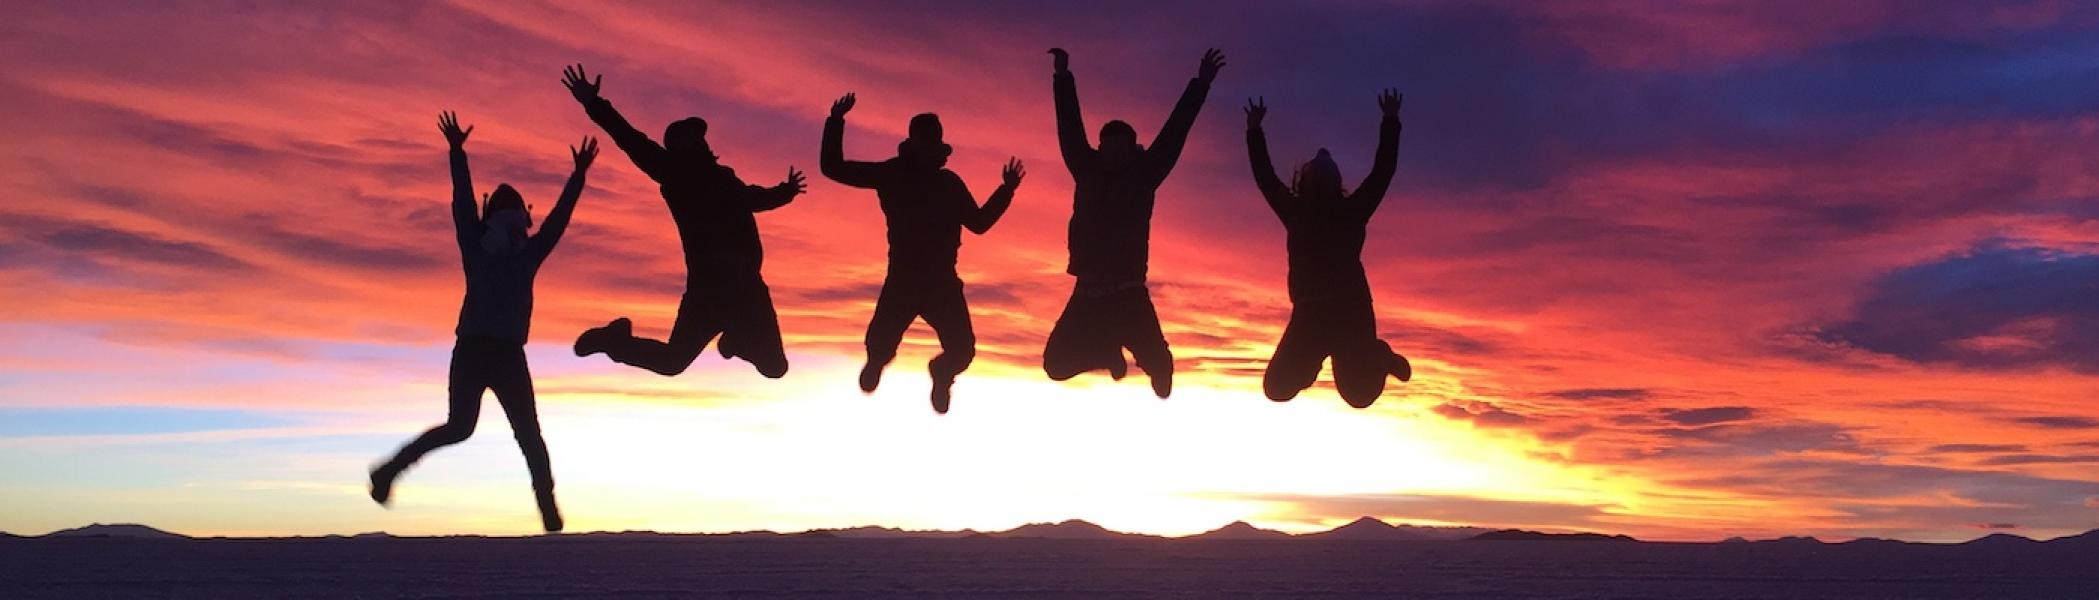 A group of people jumping in the air with a sunset behind them